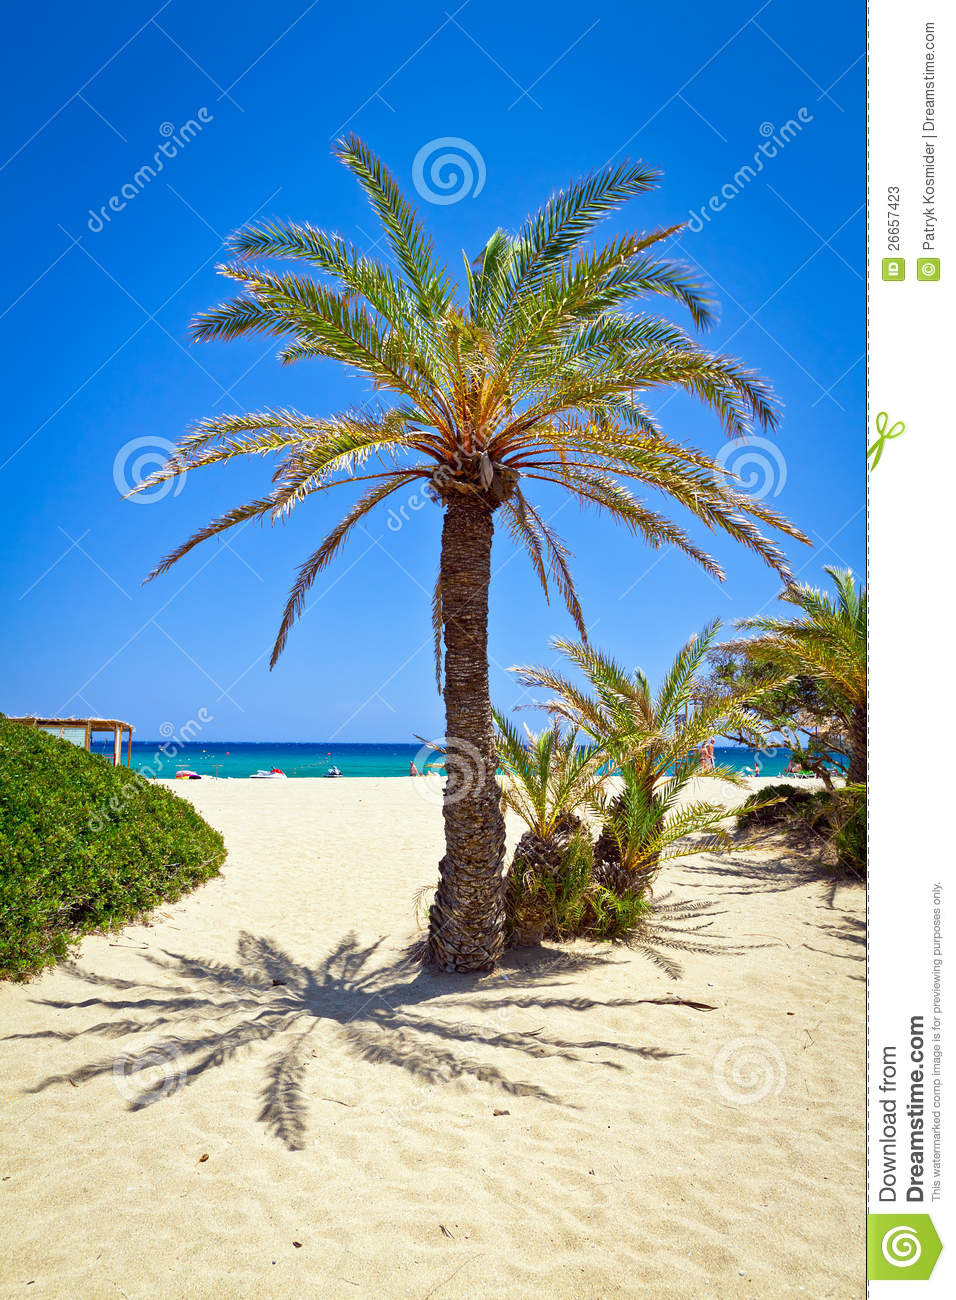 cretan date palm tree on idyllic vai beach stock photos free beach clipart with hammock free beach clip art pictures